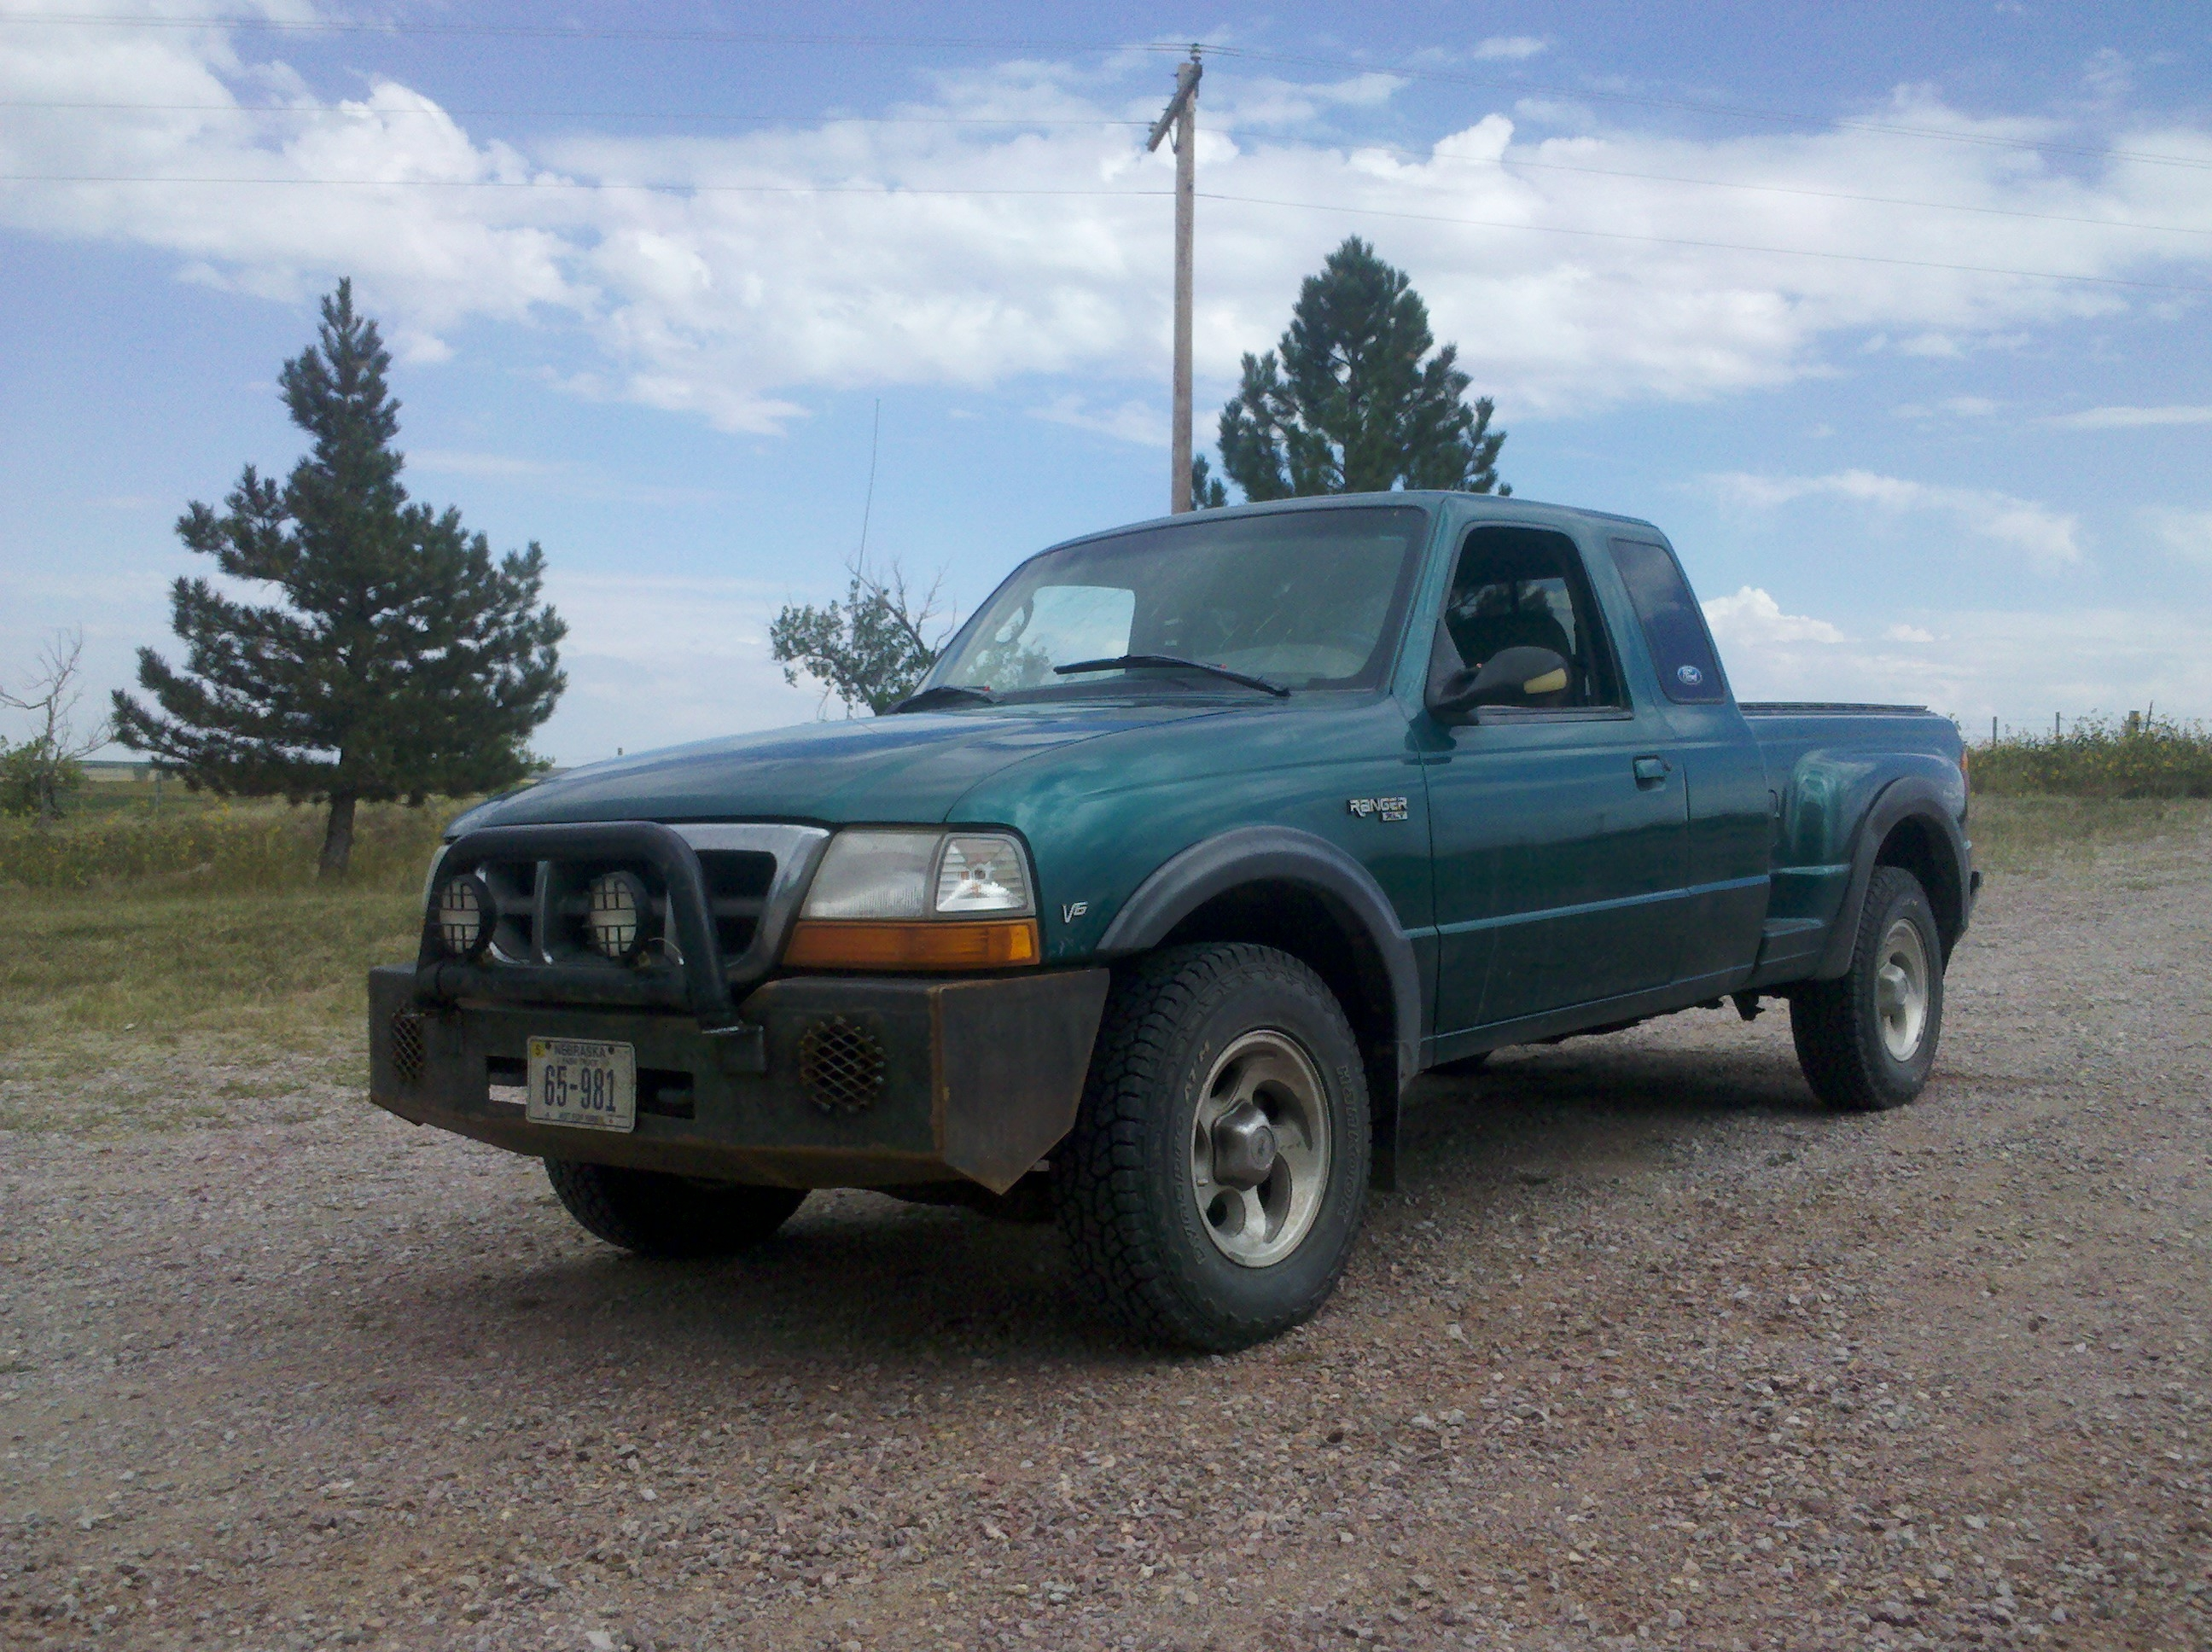 Another Kgclassiccars 1998 Ford Ranger Super Cab post... - 13942583